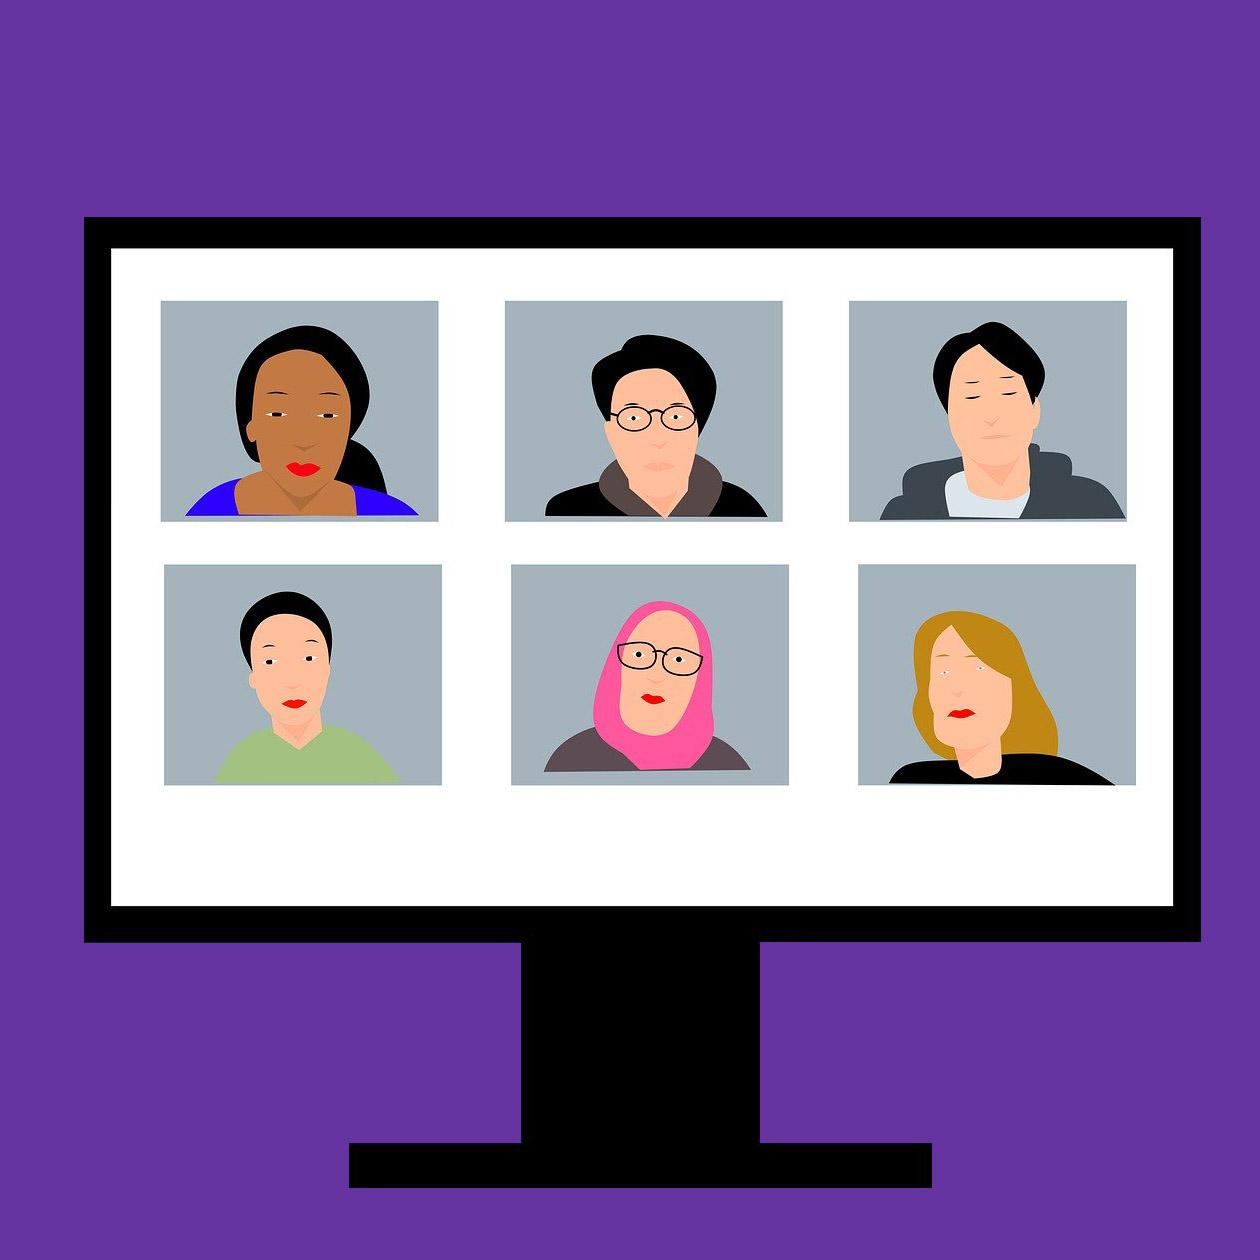 illustrated, a webinar with a diverse set of people on the screen